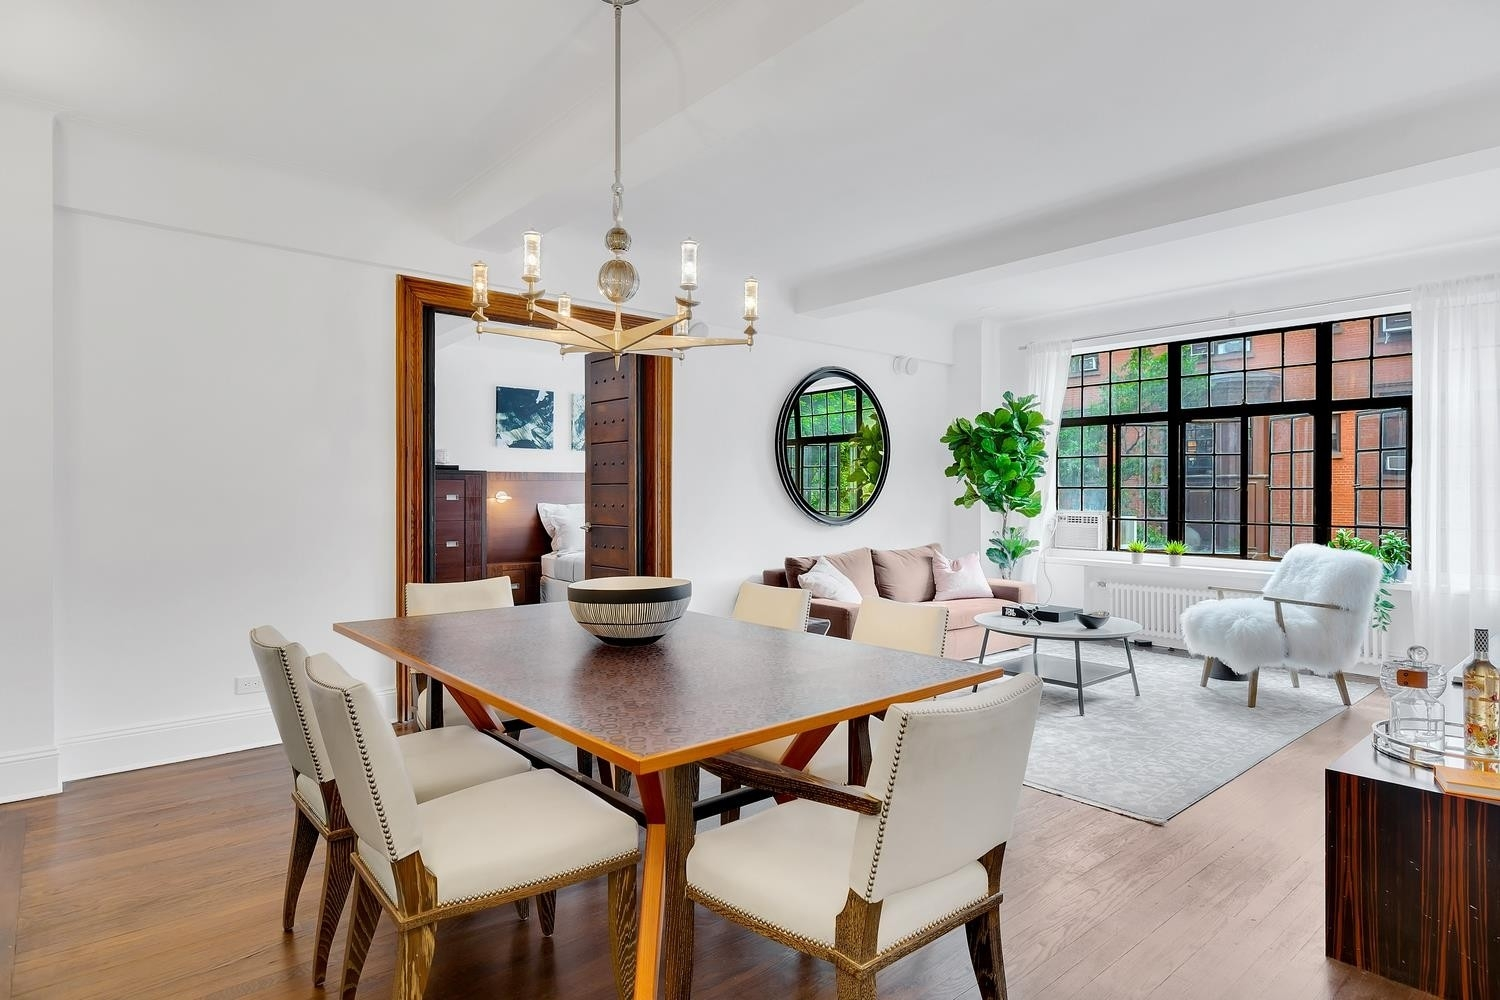 3. Co-op Properties for Sale at GRAMERCY OWNERS LTD, 44 GRAMERCY PARK N, 4C Gramercy Park, New York, NY 10010